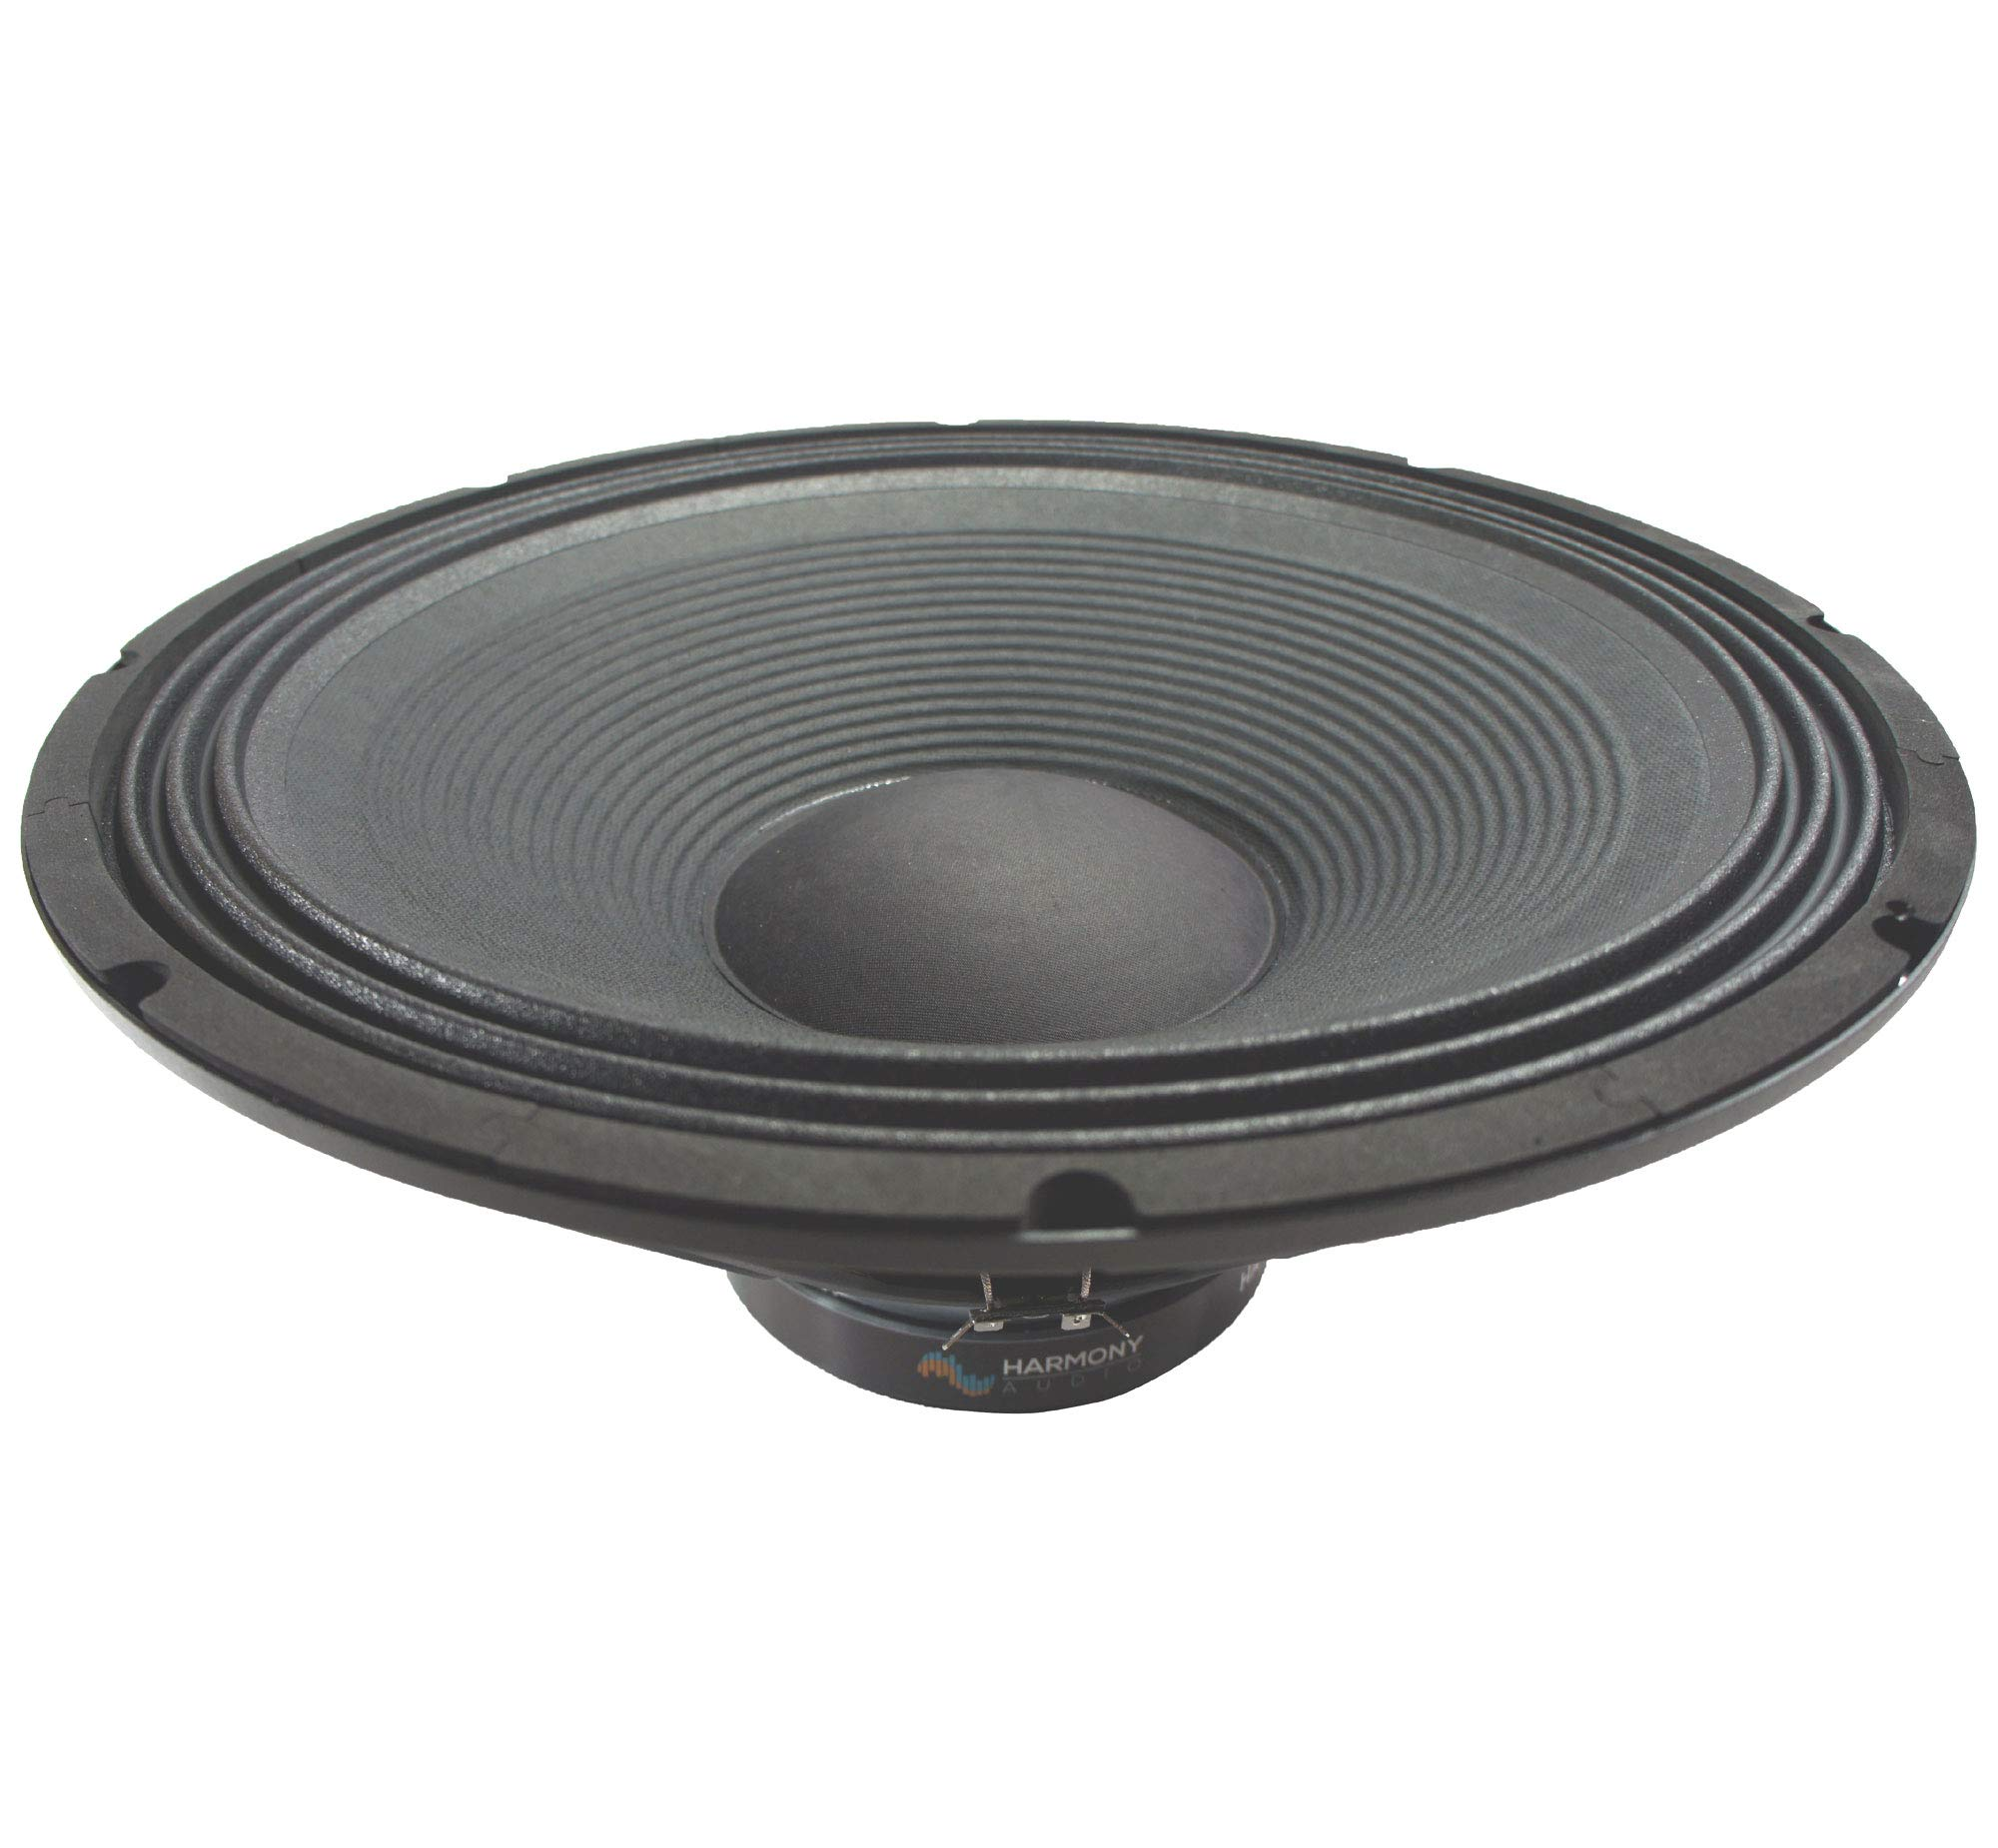 Harmony HA-P18WS8 Replacement 18'' PA Speaker Woofer for Peavey PV118 Sub